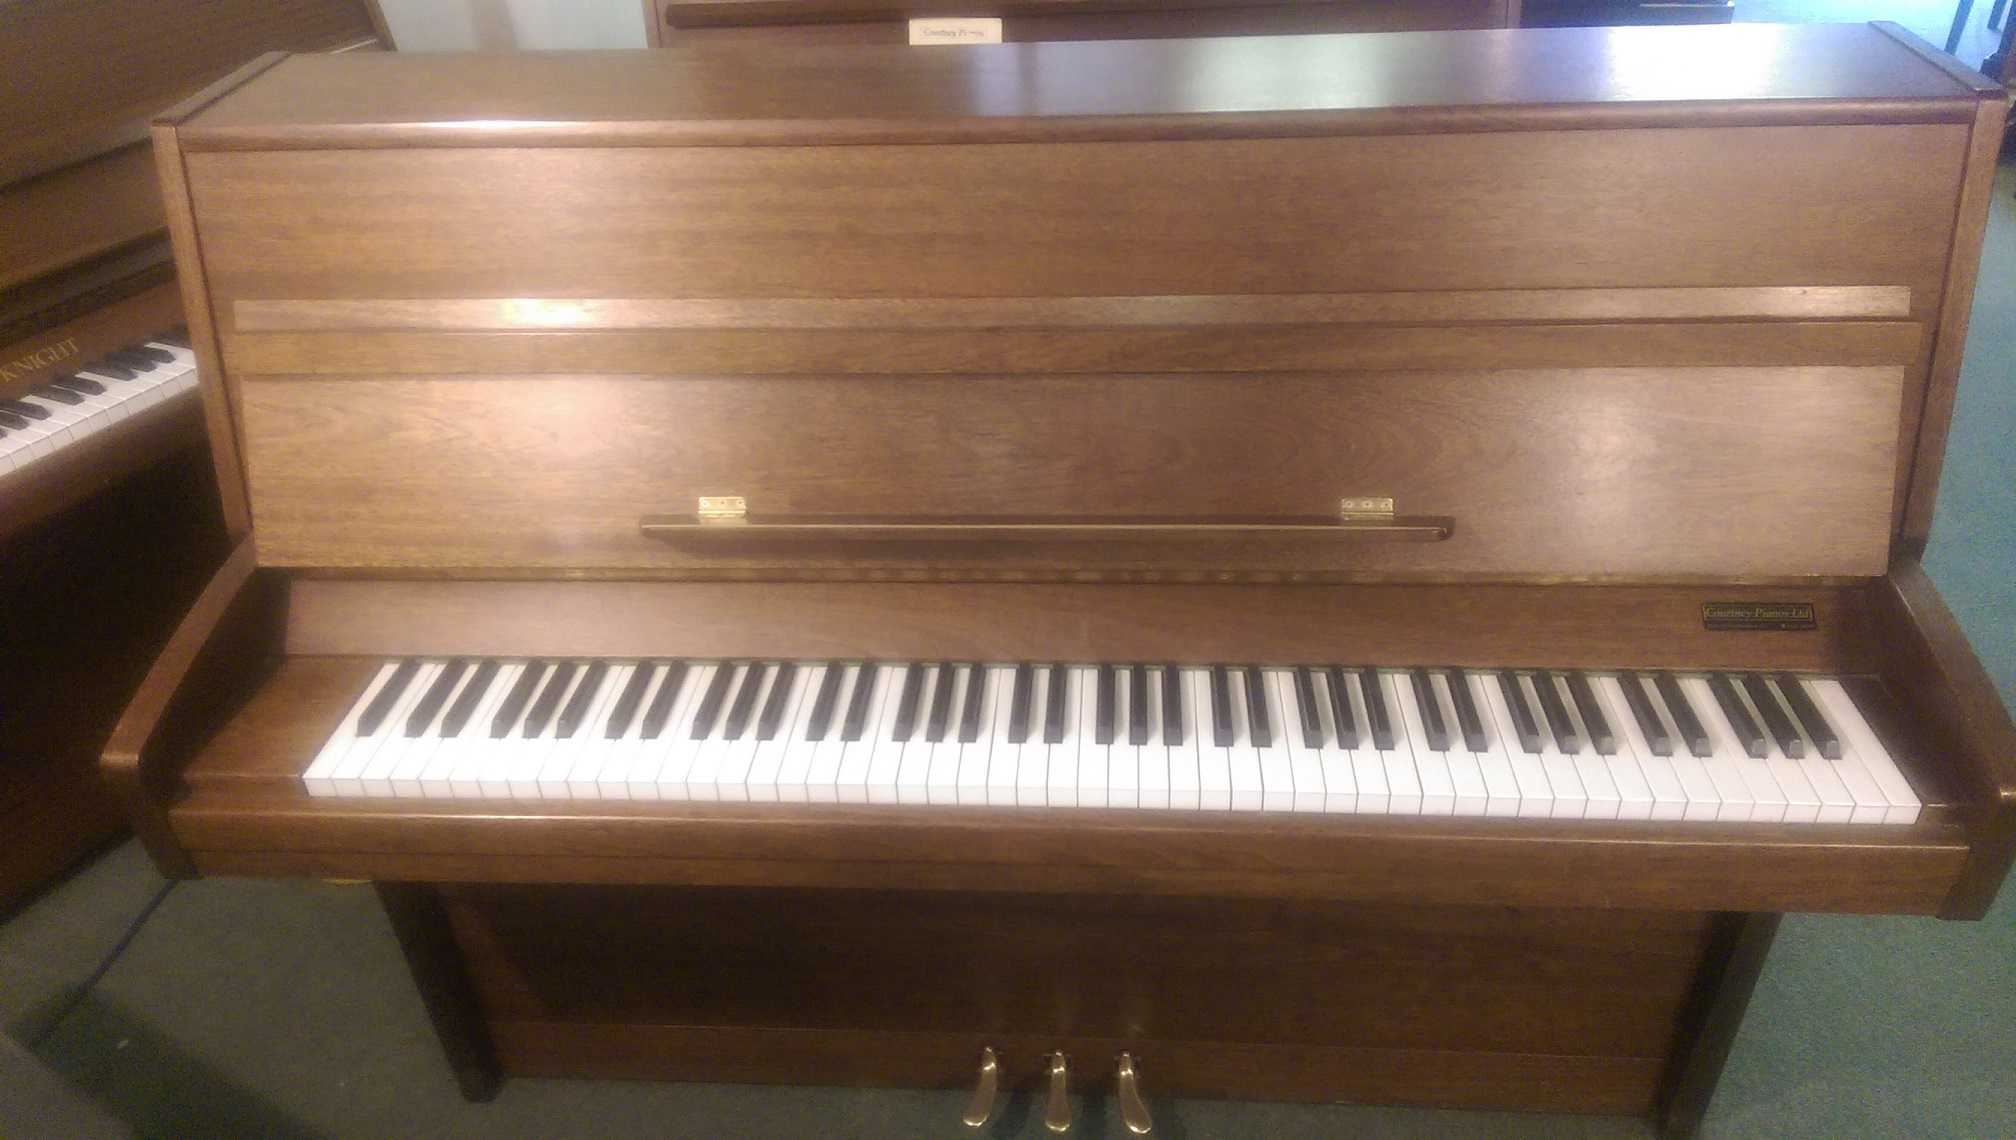 Rippen Upright Piano Belcanto